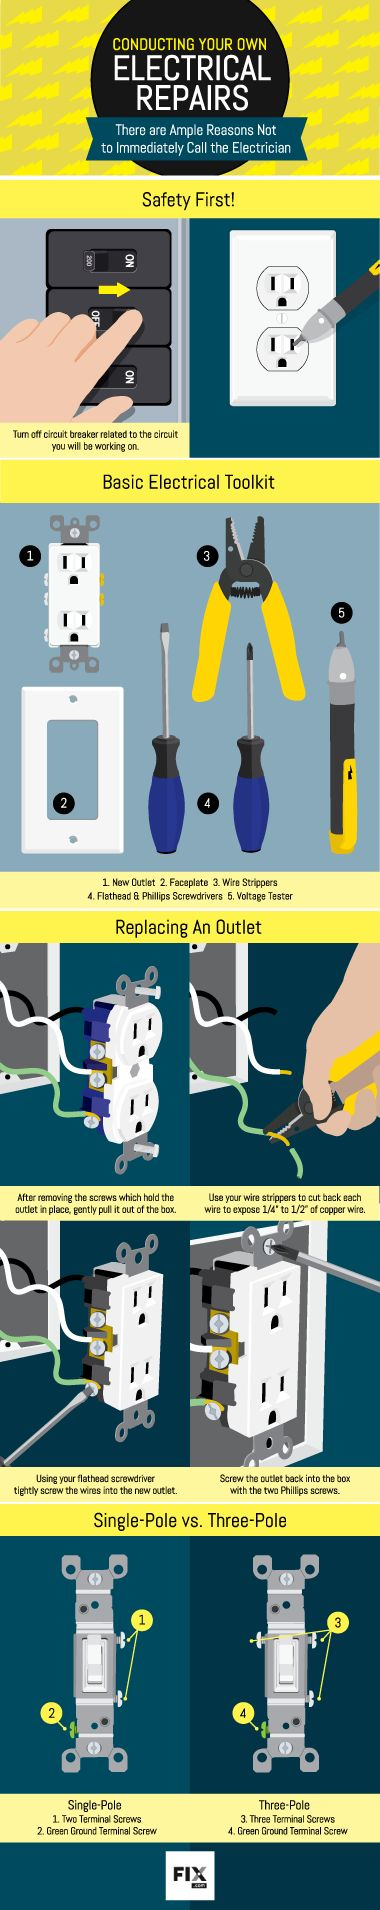 Follow our guide to swapping out a faulty outlet or switch and you'll be doing DIY-electrical repairs in no time!